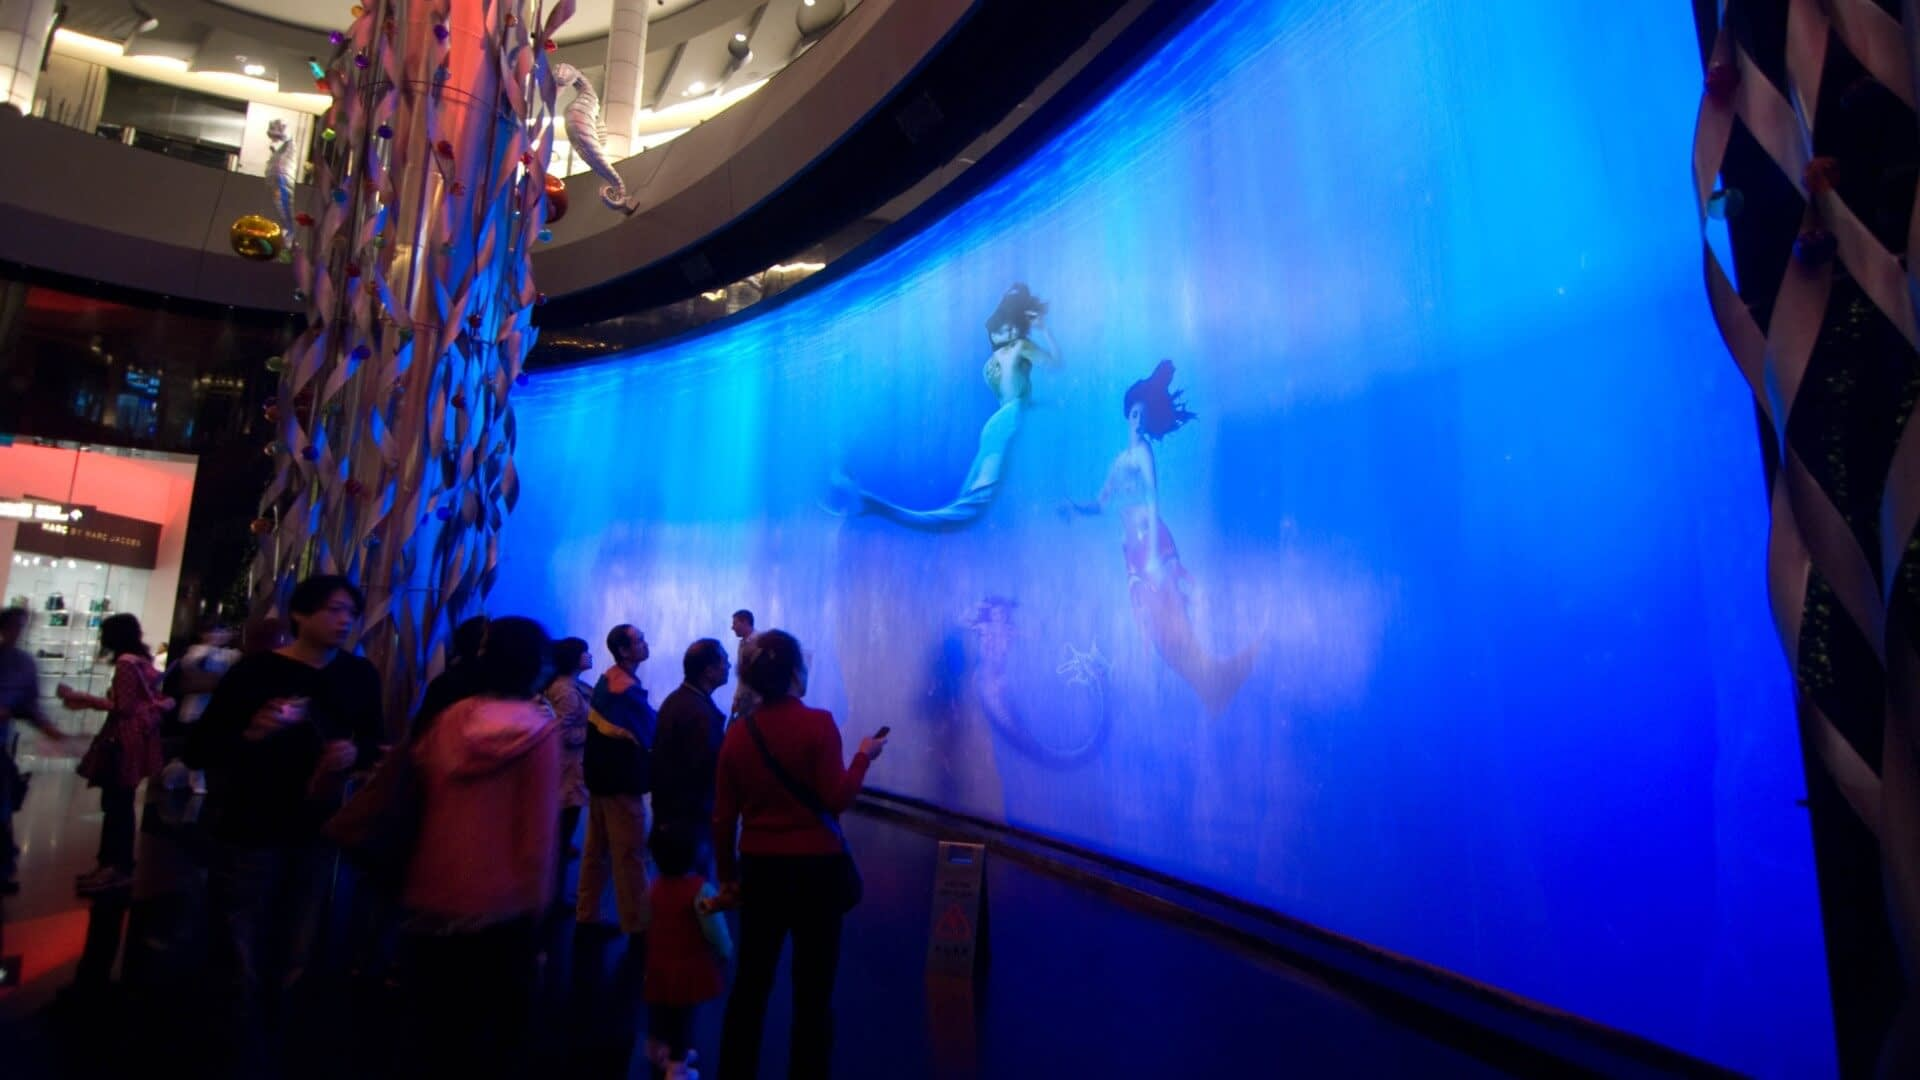 Virtual Aquarium in Macao